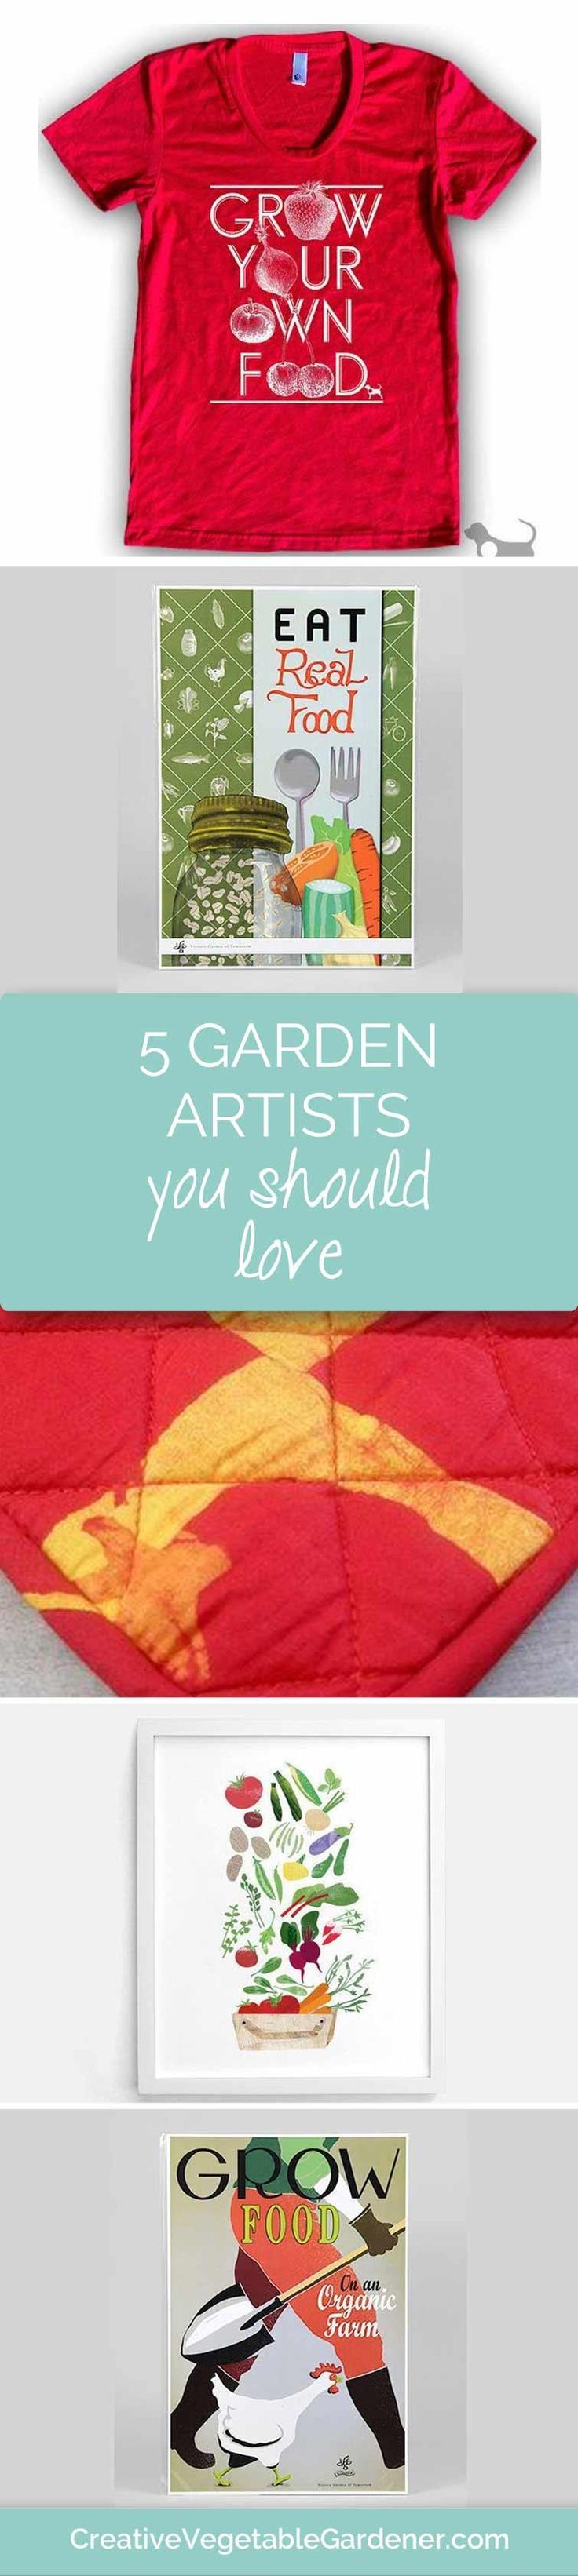 Vegetable garden art - 5 Favorite Garden Artists Featured In My Own House